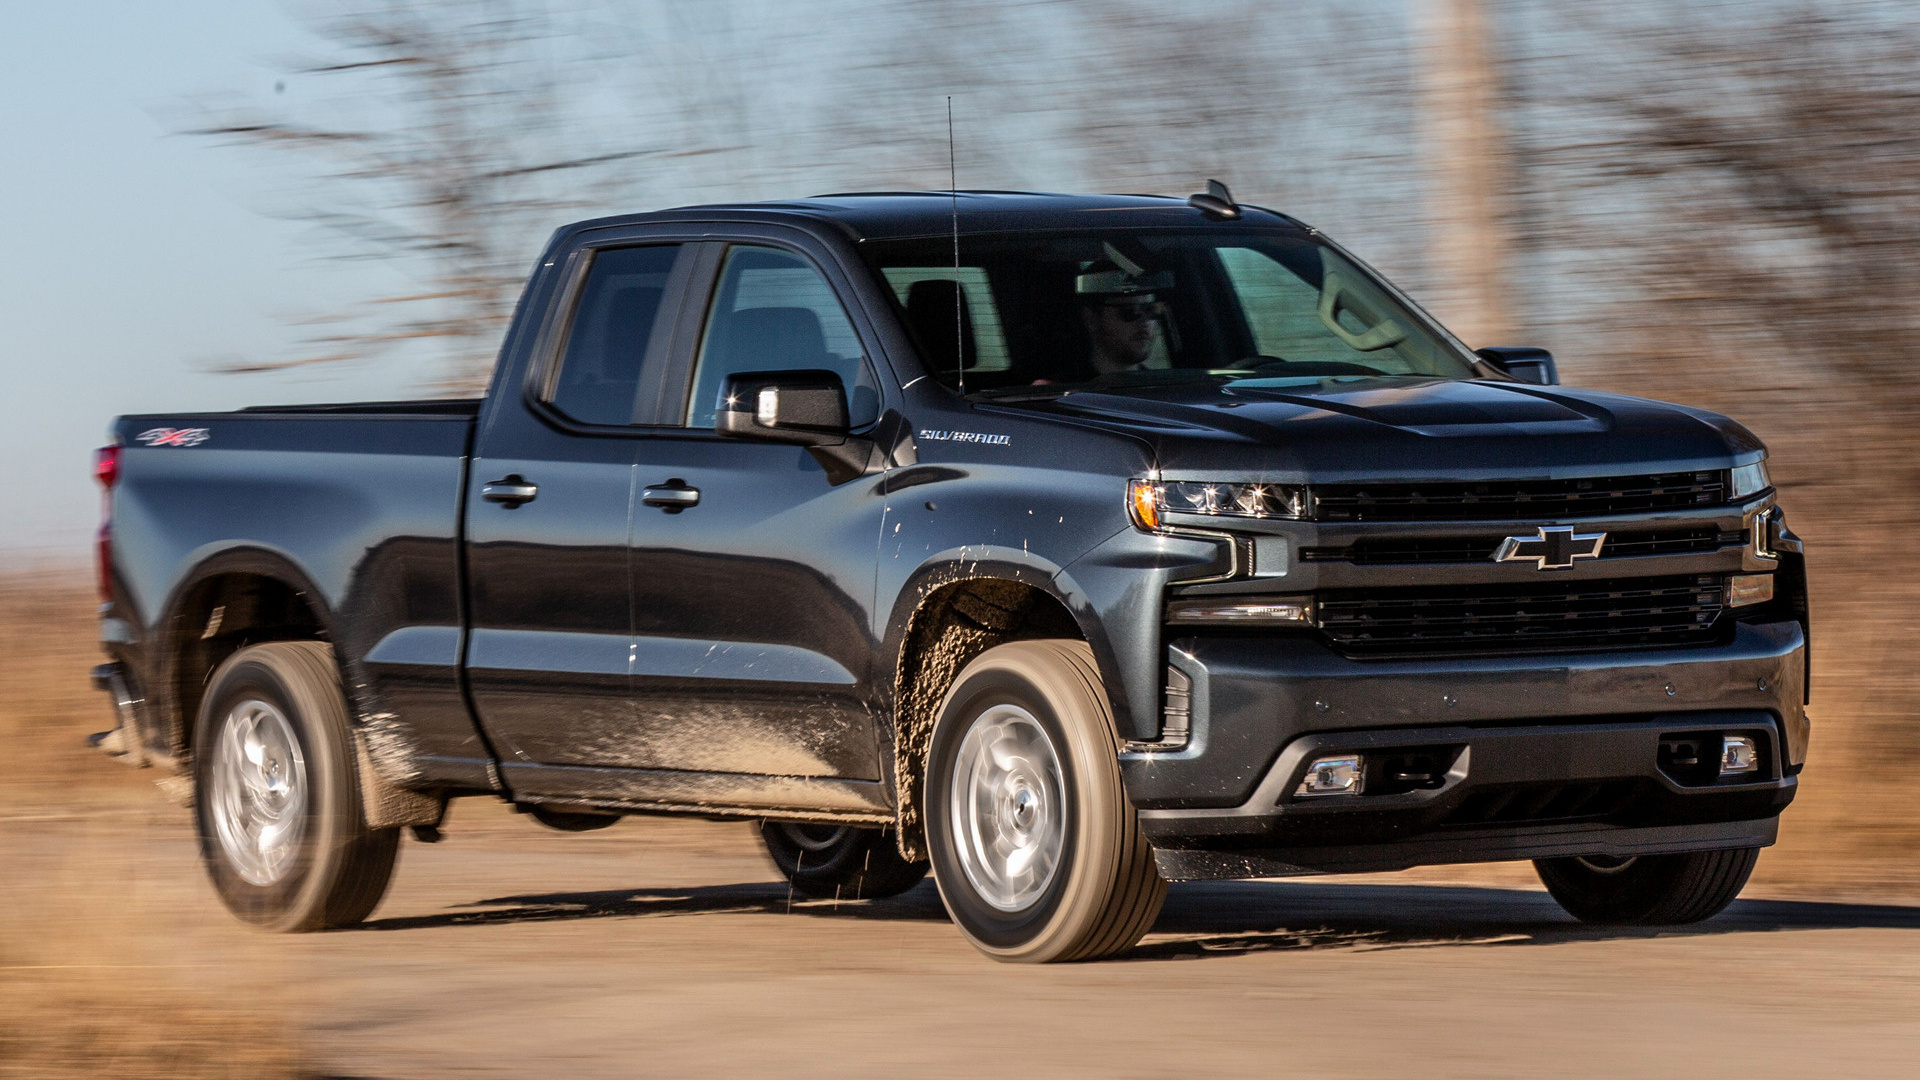 2019 Chevrolet Silverado Rst Double Cab Wallpapers And